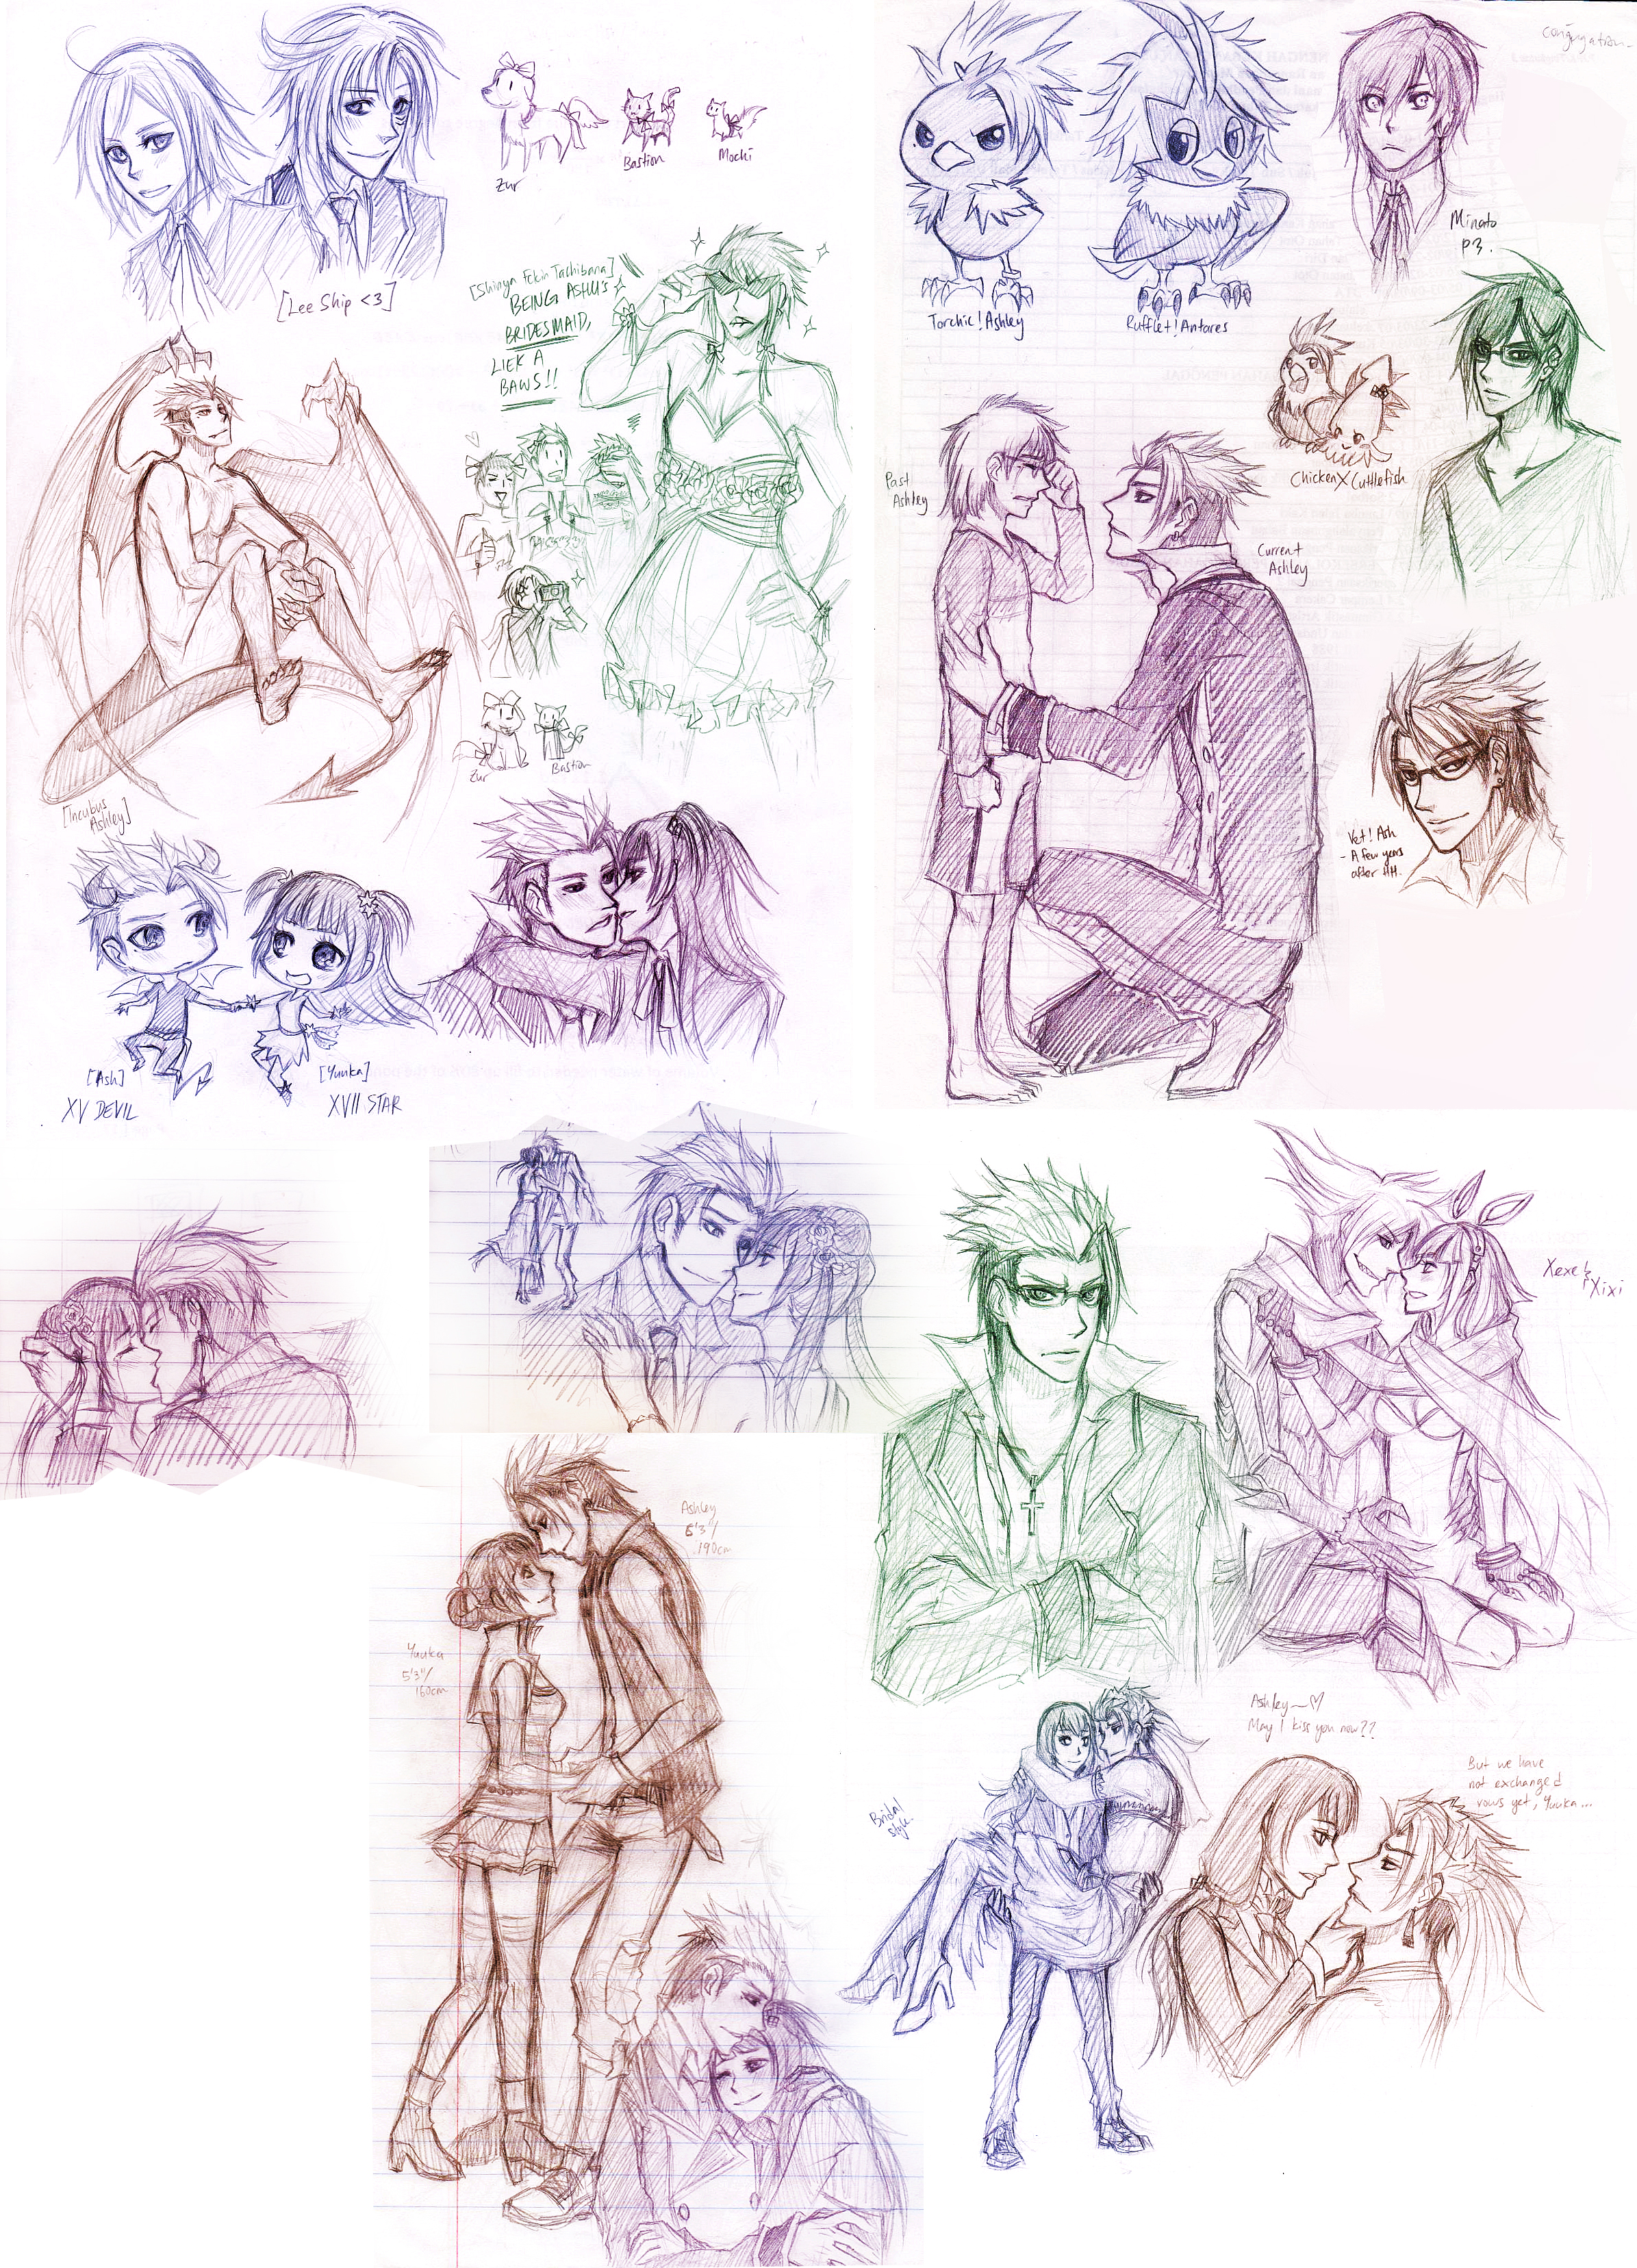 Sketch Dump 04032012 By Cherubchan On DeviantArt